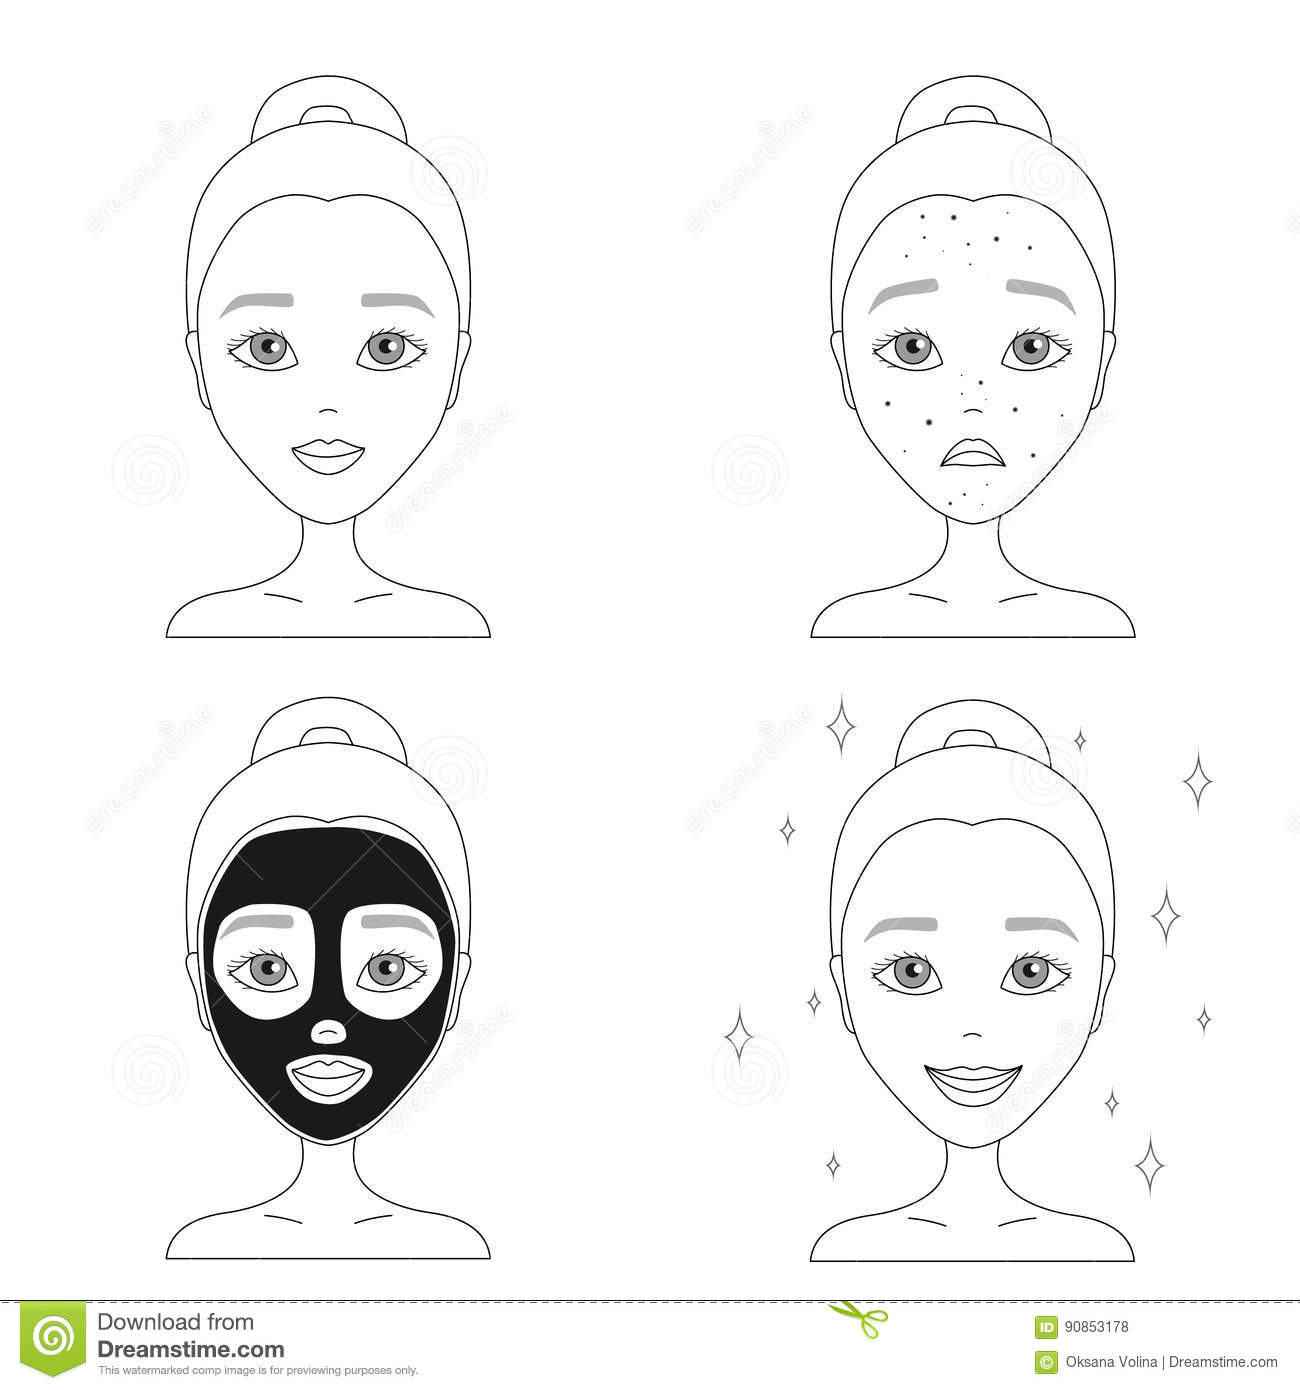 Contour Drawing Of A Sad Face Of A Girl With Acne With A